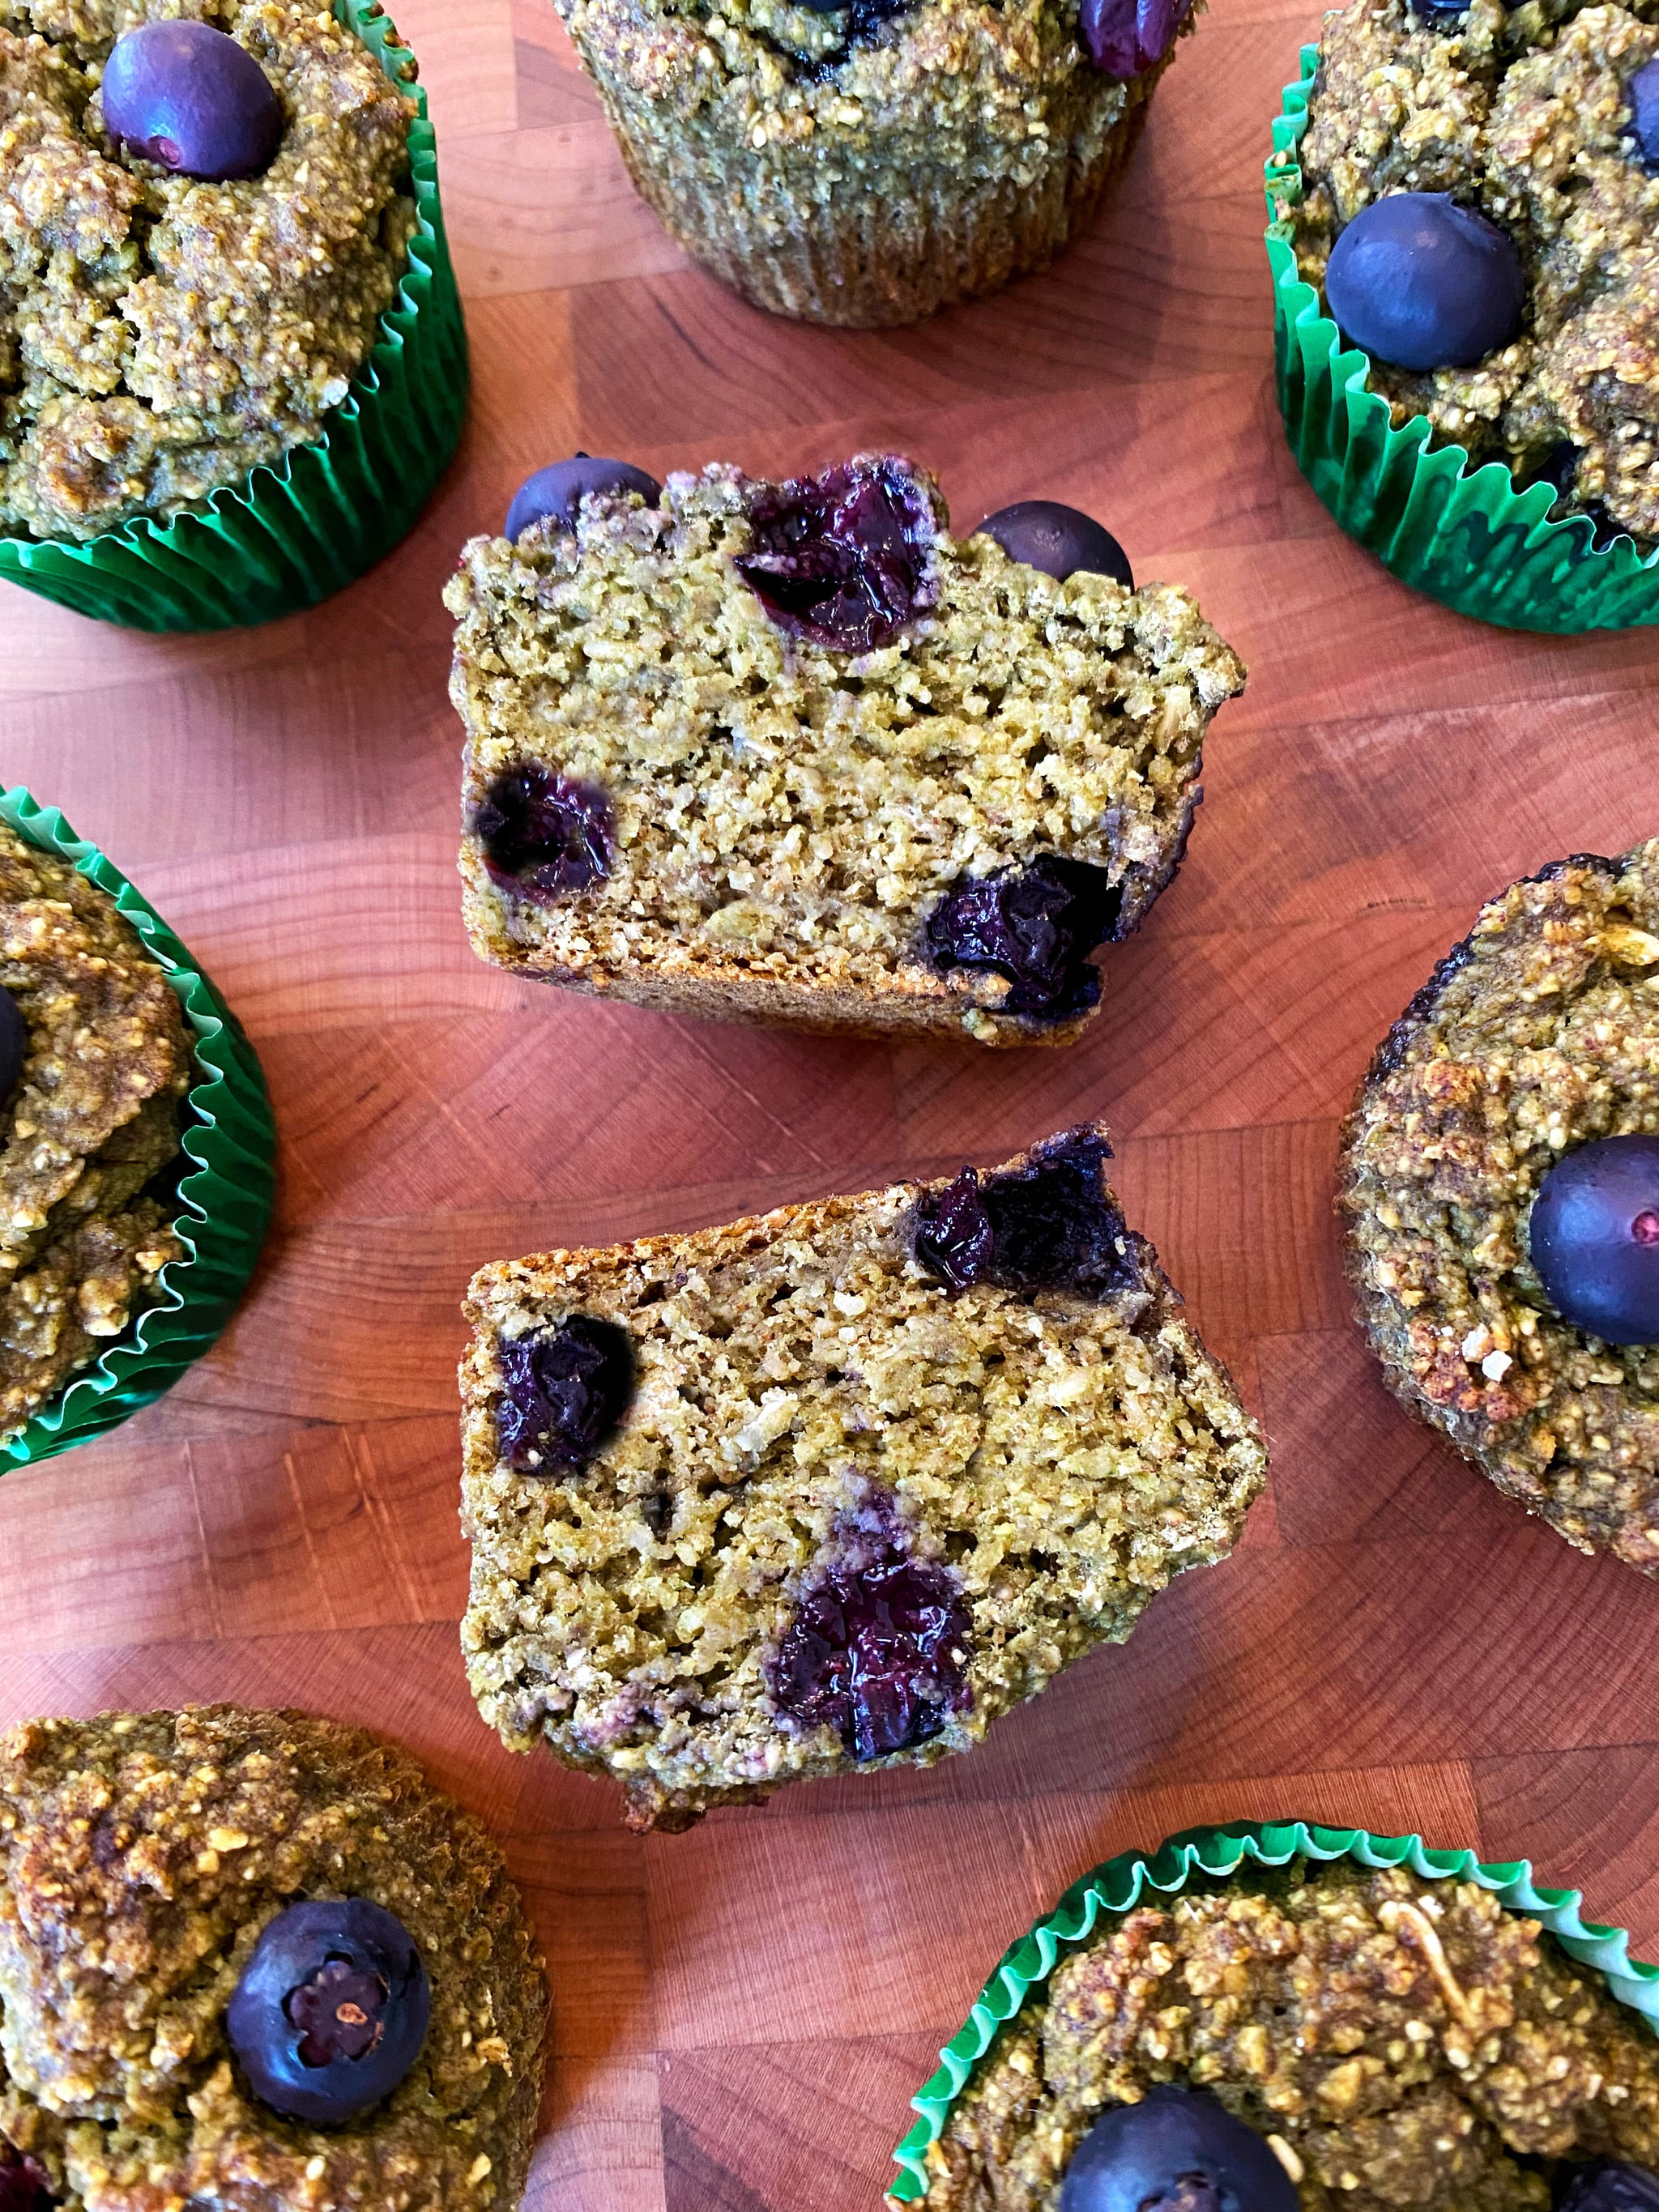 Refined-Sugar-Free Banana Blueberry Spinach Muffins 8